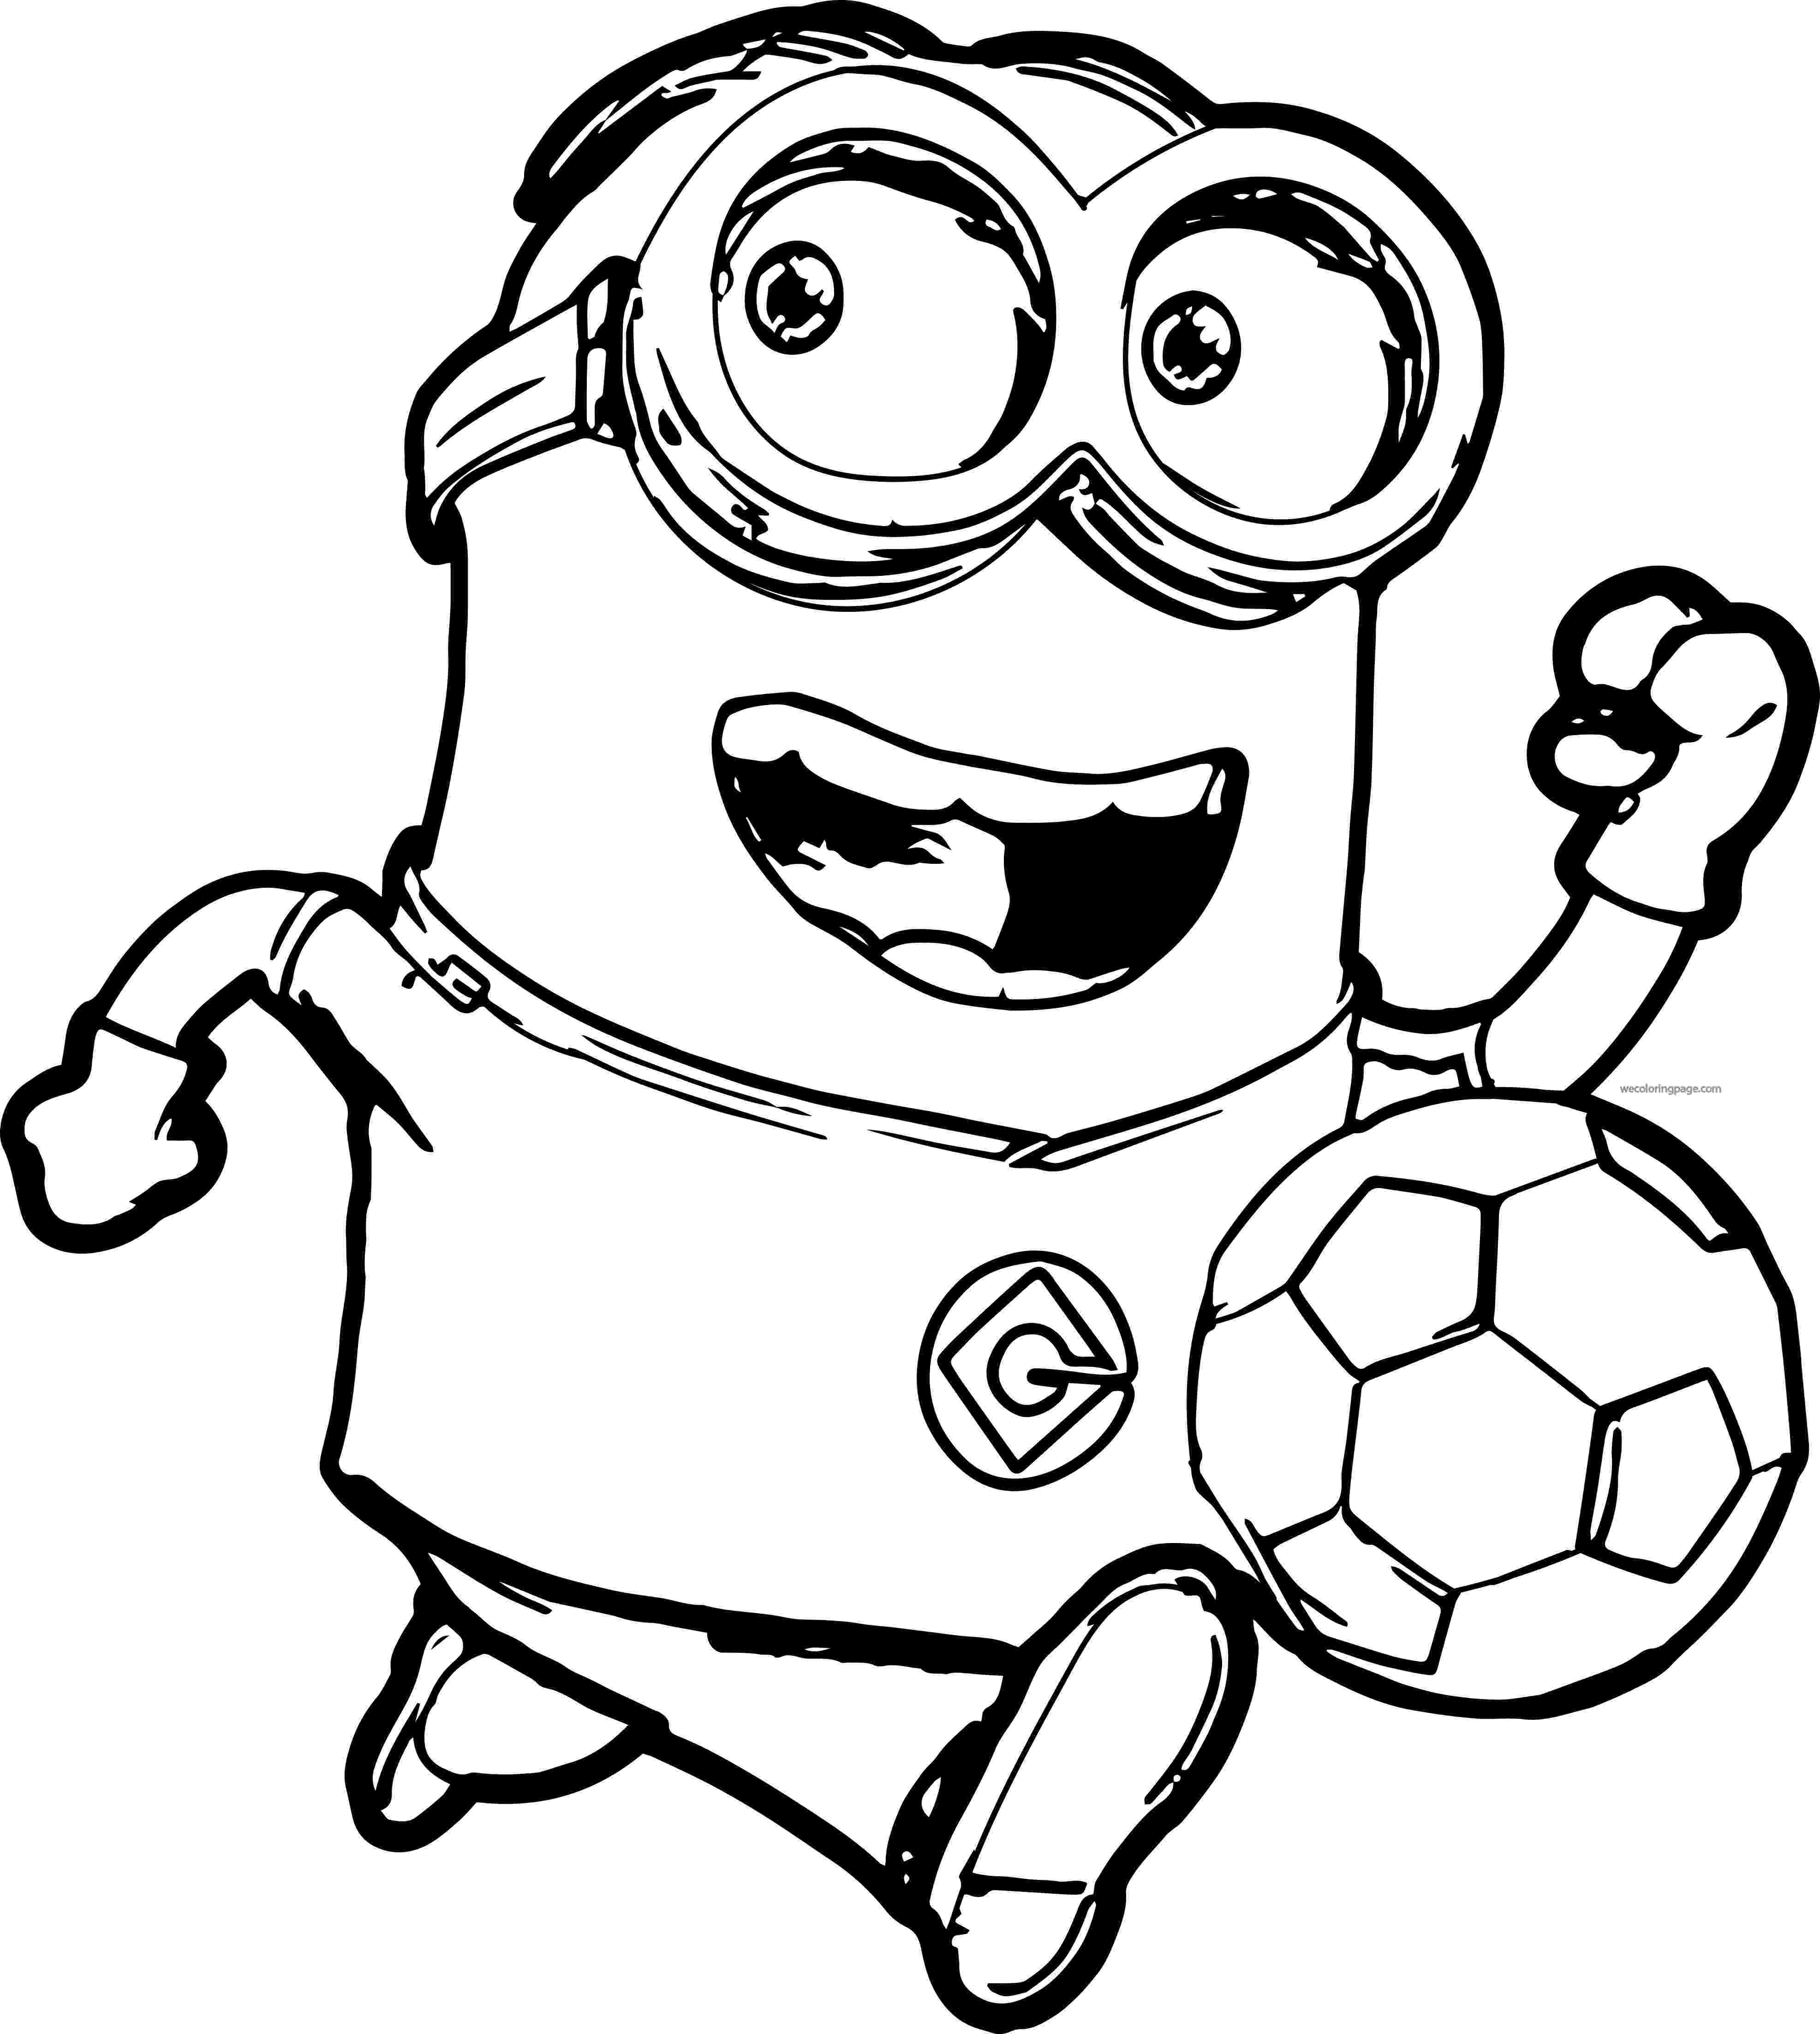 minion color pages minion coloring pages best coloring pages for kids color pages minion